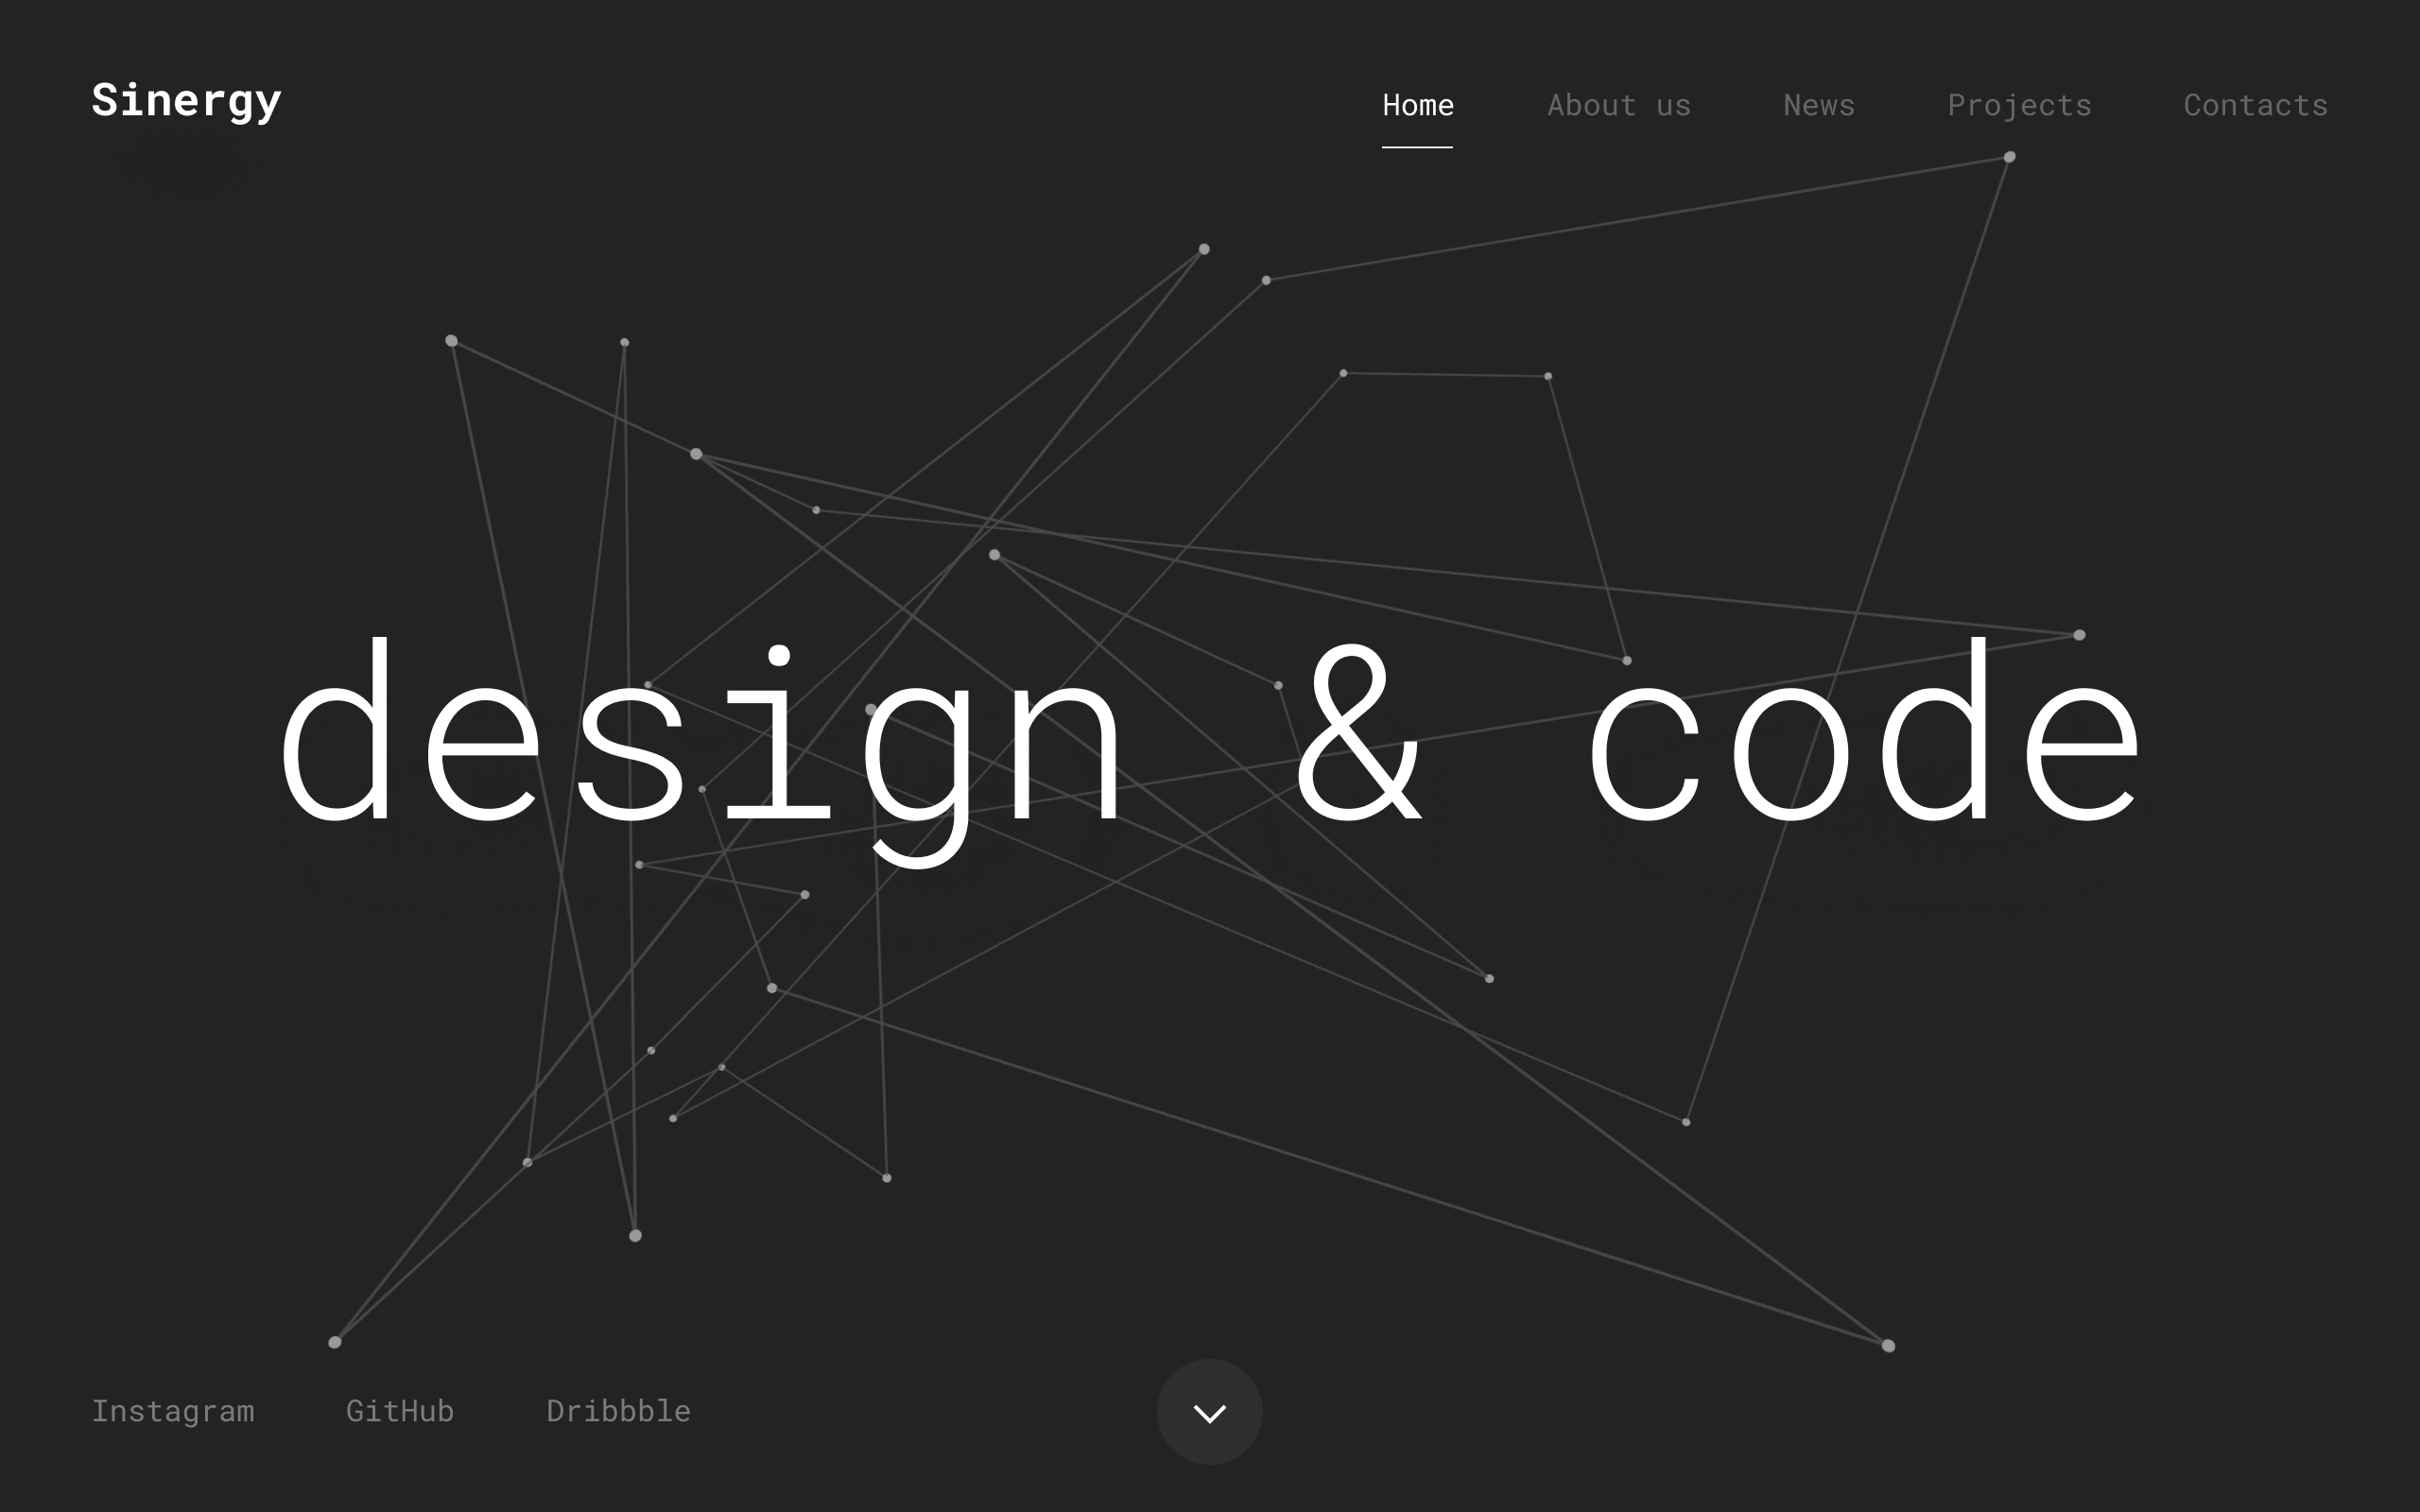 Design and code 1280x800 2x